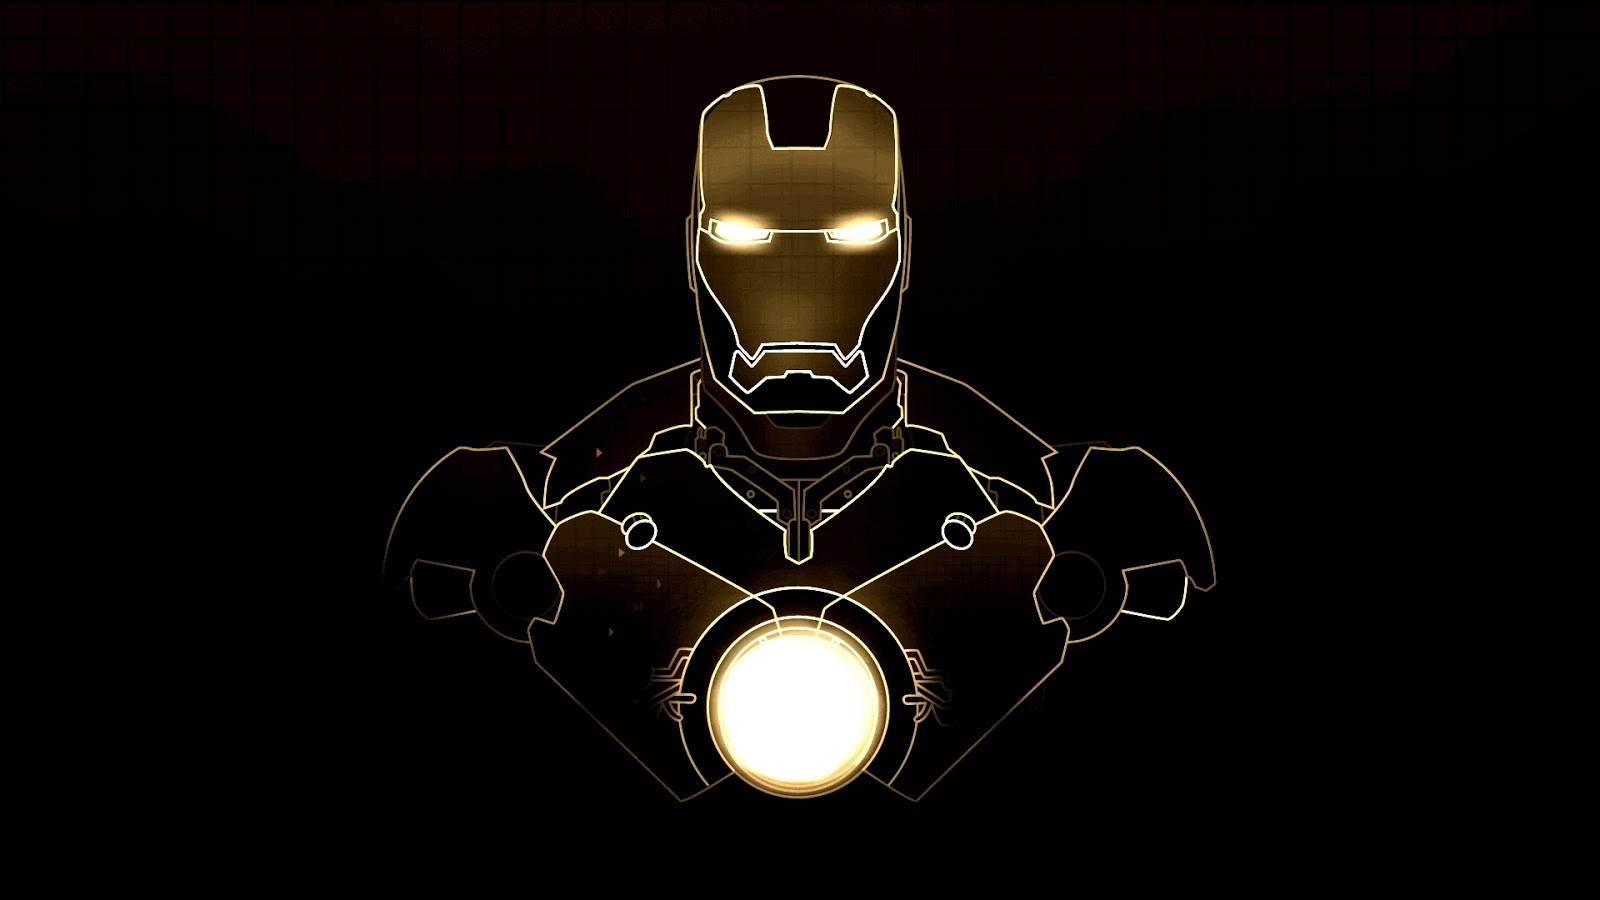 1000 images about wallpapers on pinterest gwyneth - Iron man heart wallpaper ...